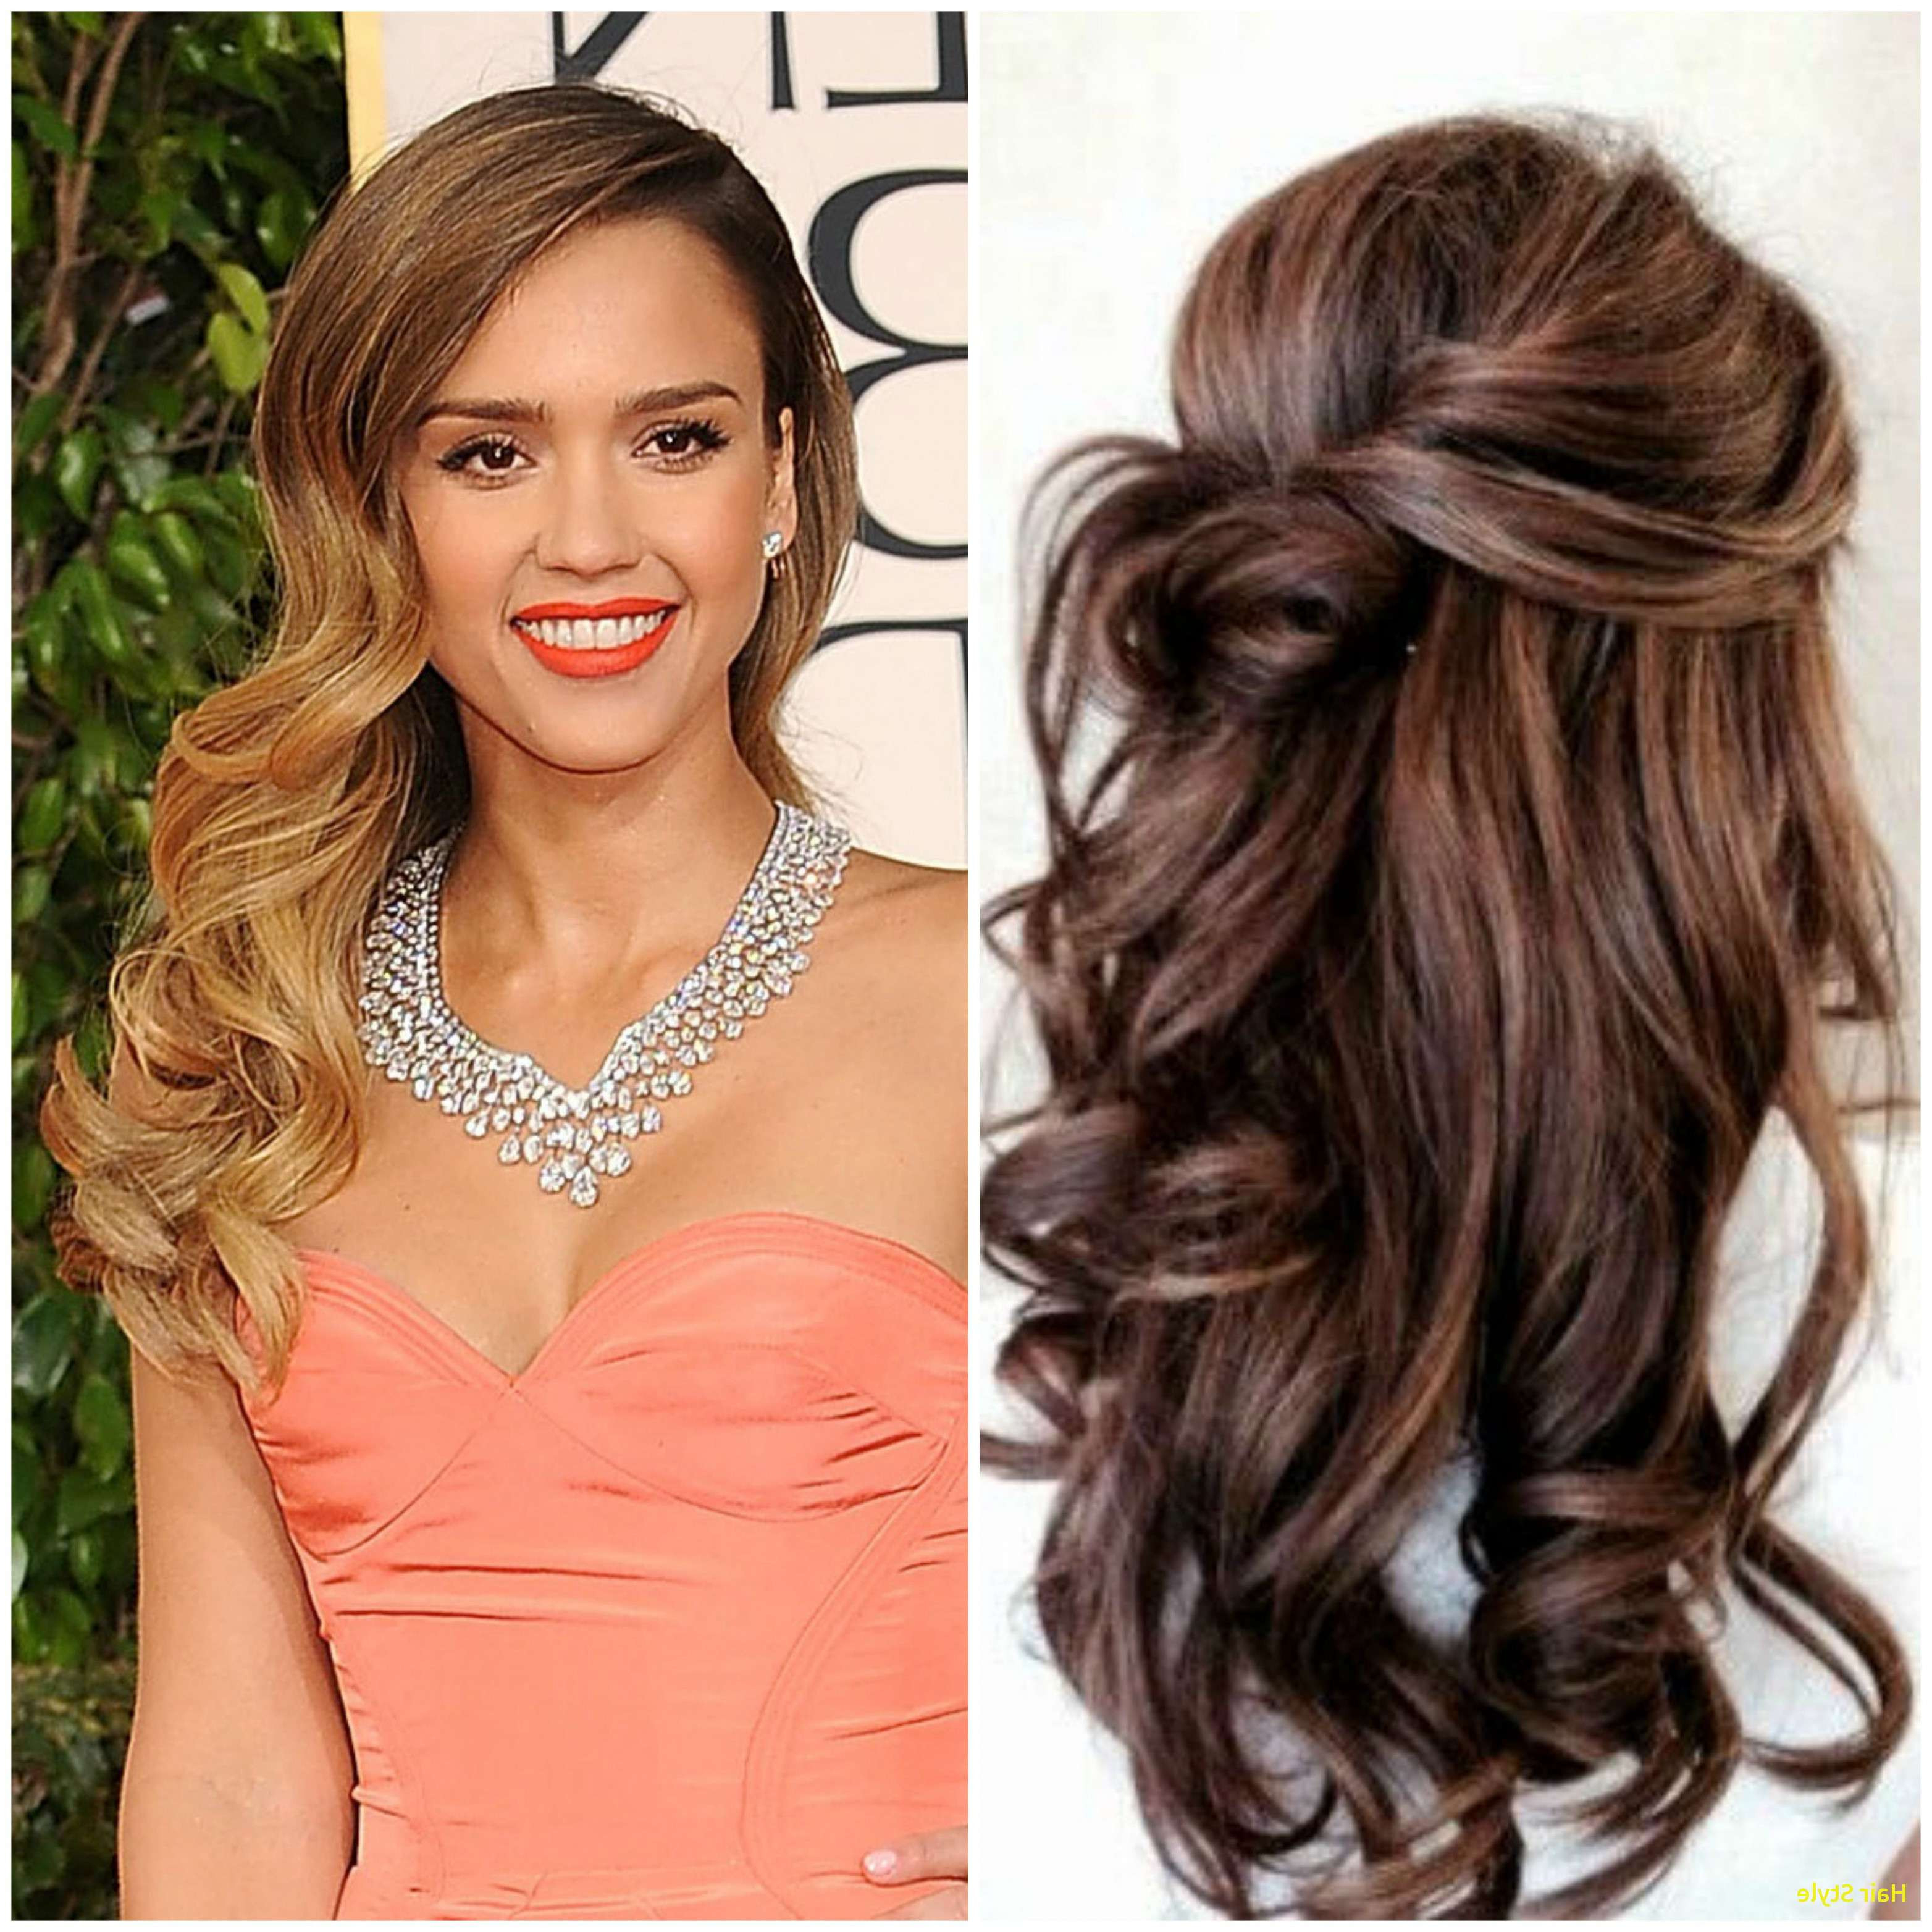 Bridesmaid Hairstyles For Very Short Hair Best Of Lovely Wedding Inside Short Hairstyles For Weddings For Bridesmaids (View 9 of 25)